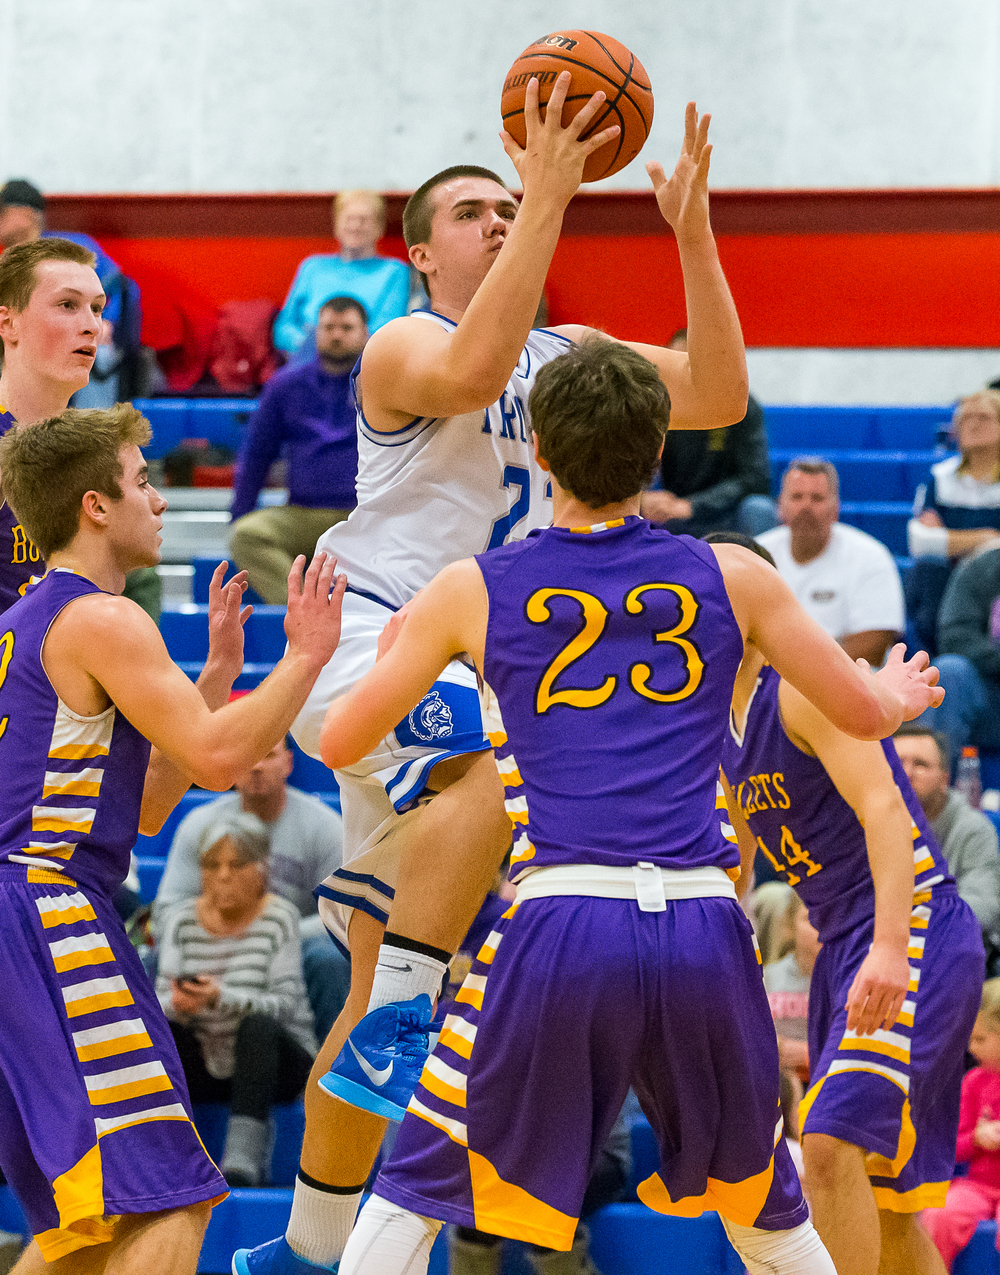 Auburn's Scott McDermand (22) goes in for a layup against Williamsville in the first half during the Sangamon County Tournament at  Lincoln Land Community College's Cass Gymnasium, Thursday, Jan. 15, 2015, in Springfield, Ill. Justin L. Fowler/The State Journal-Register